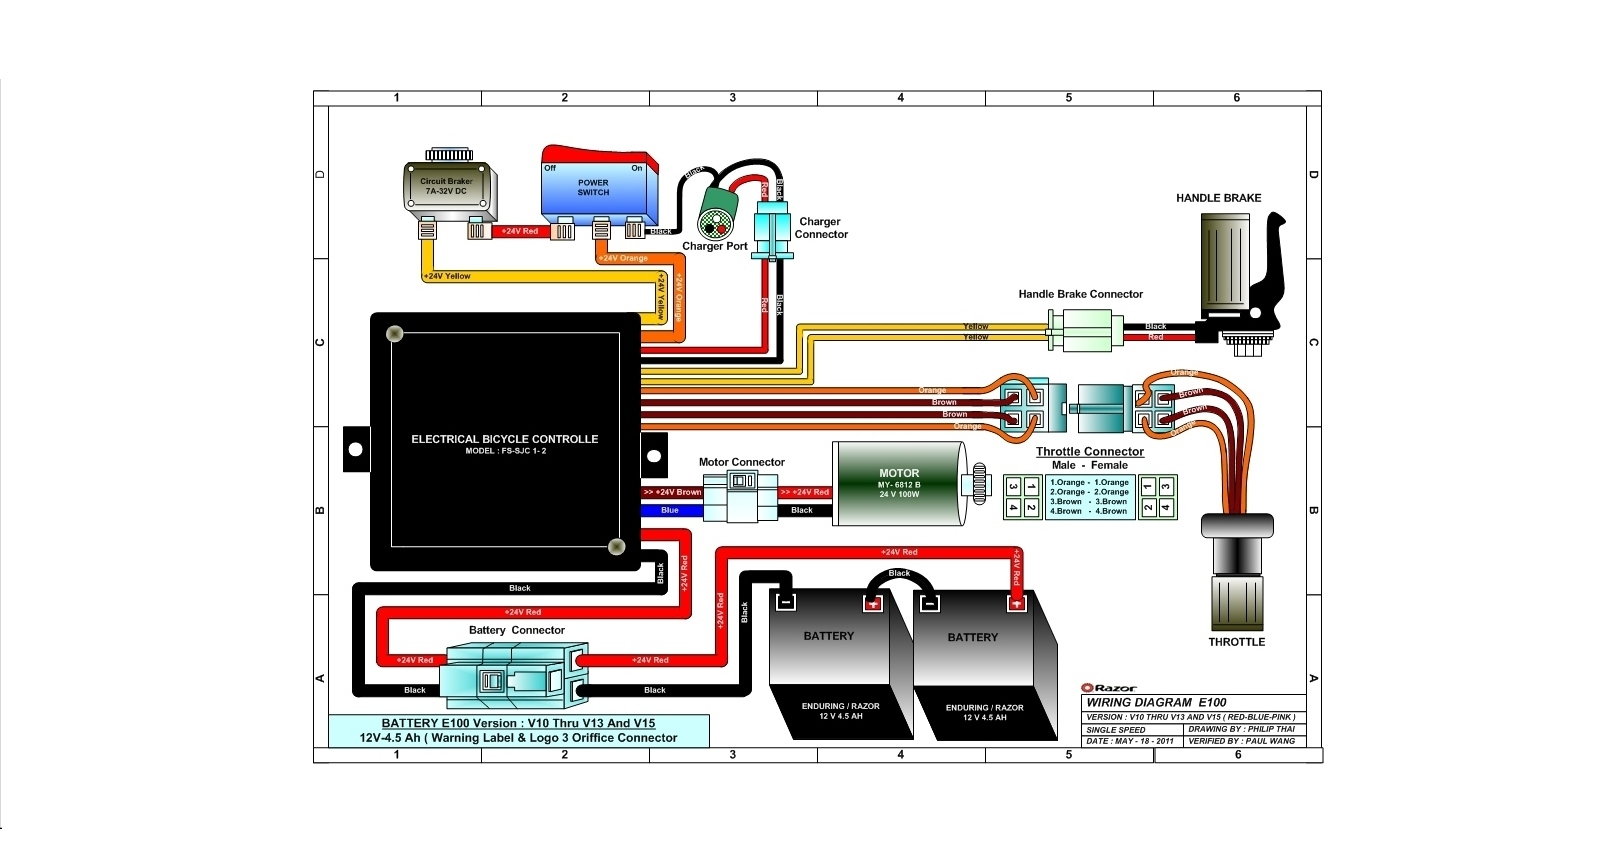 hight resolution of e100 versions 10 13 15 wiring diagram